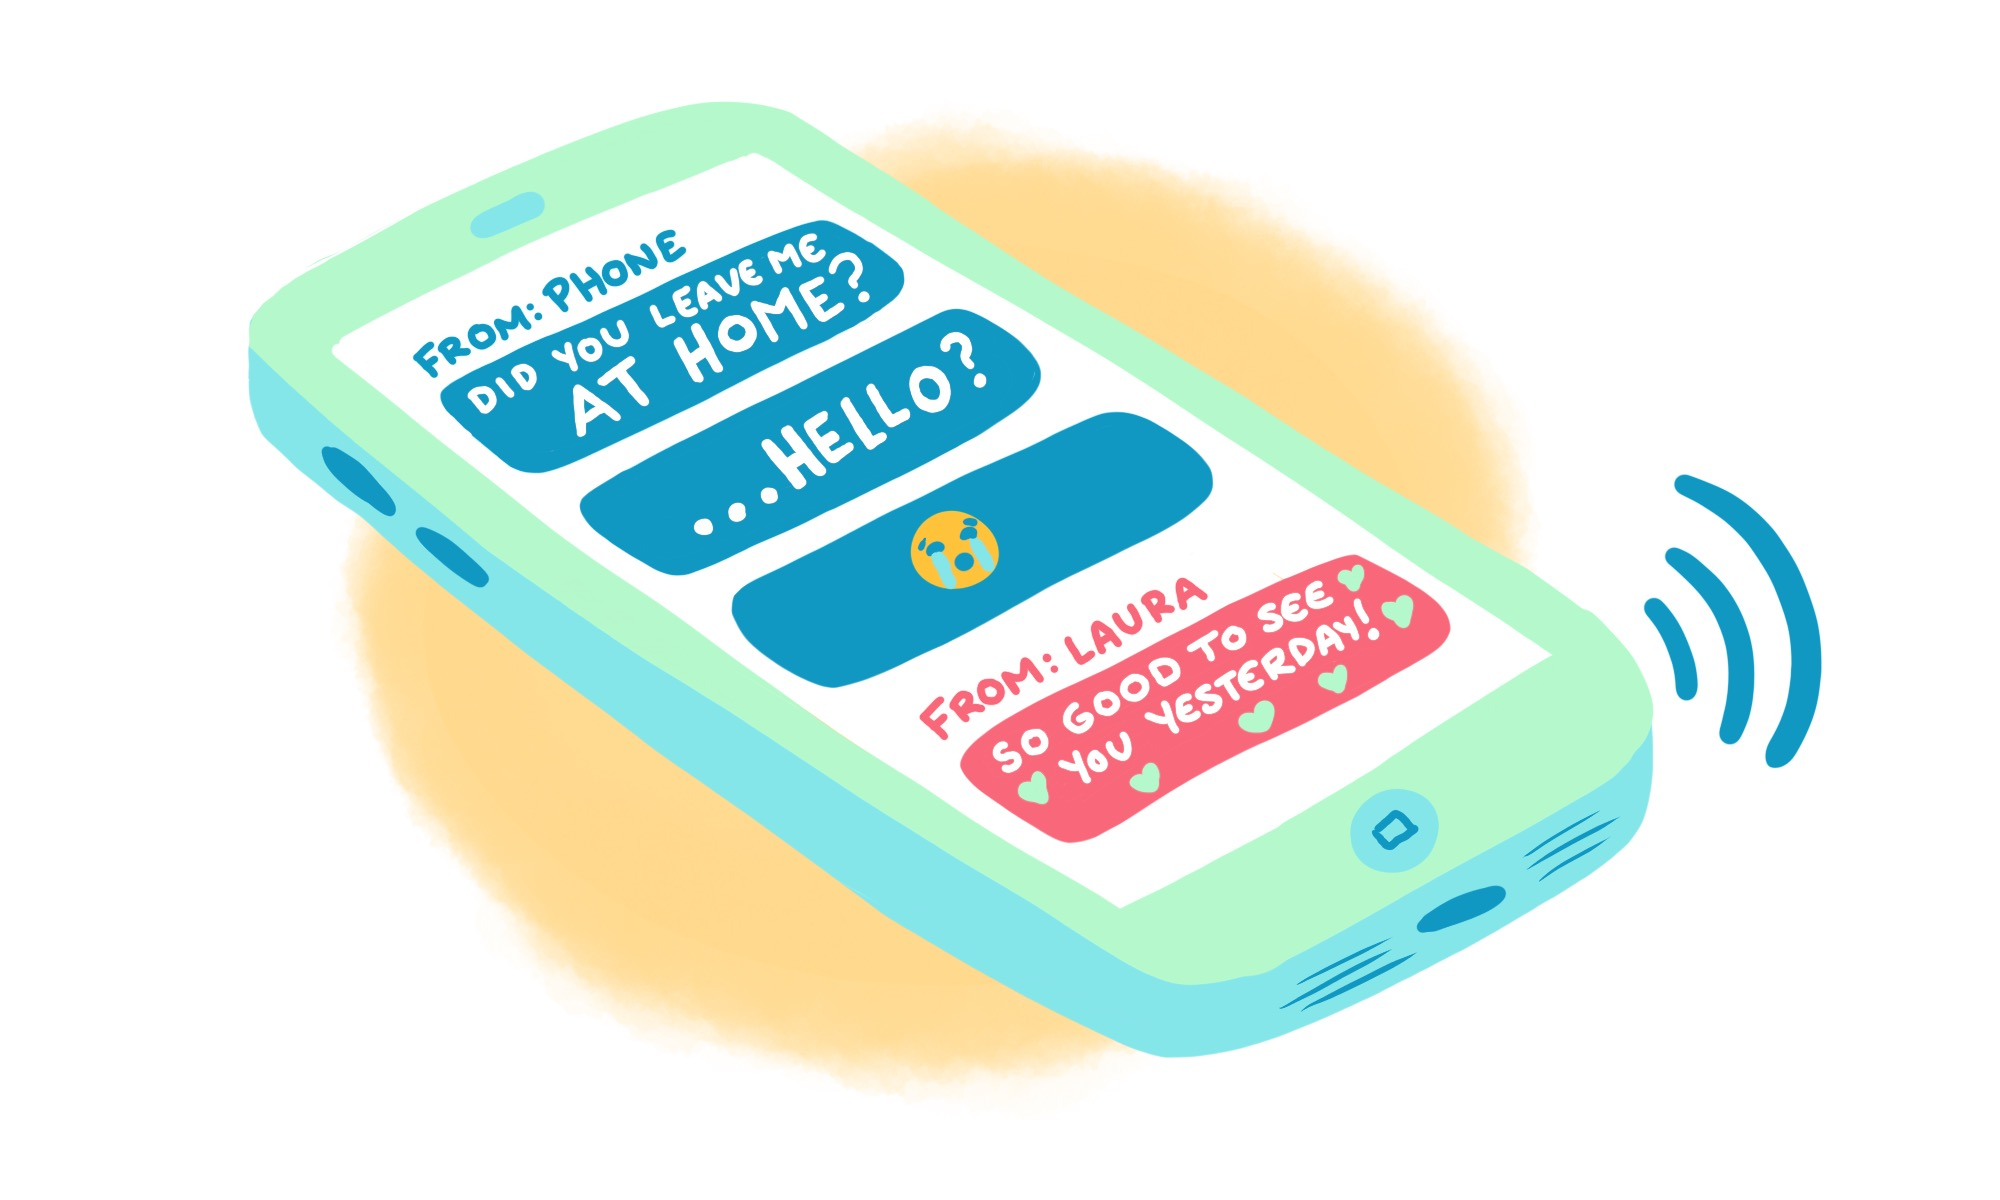 A sketch of a smartphone with unanswered messages. Illustration by Pepper Curry